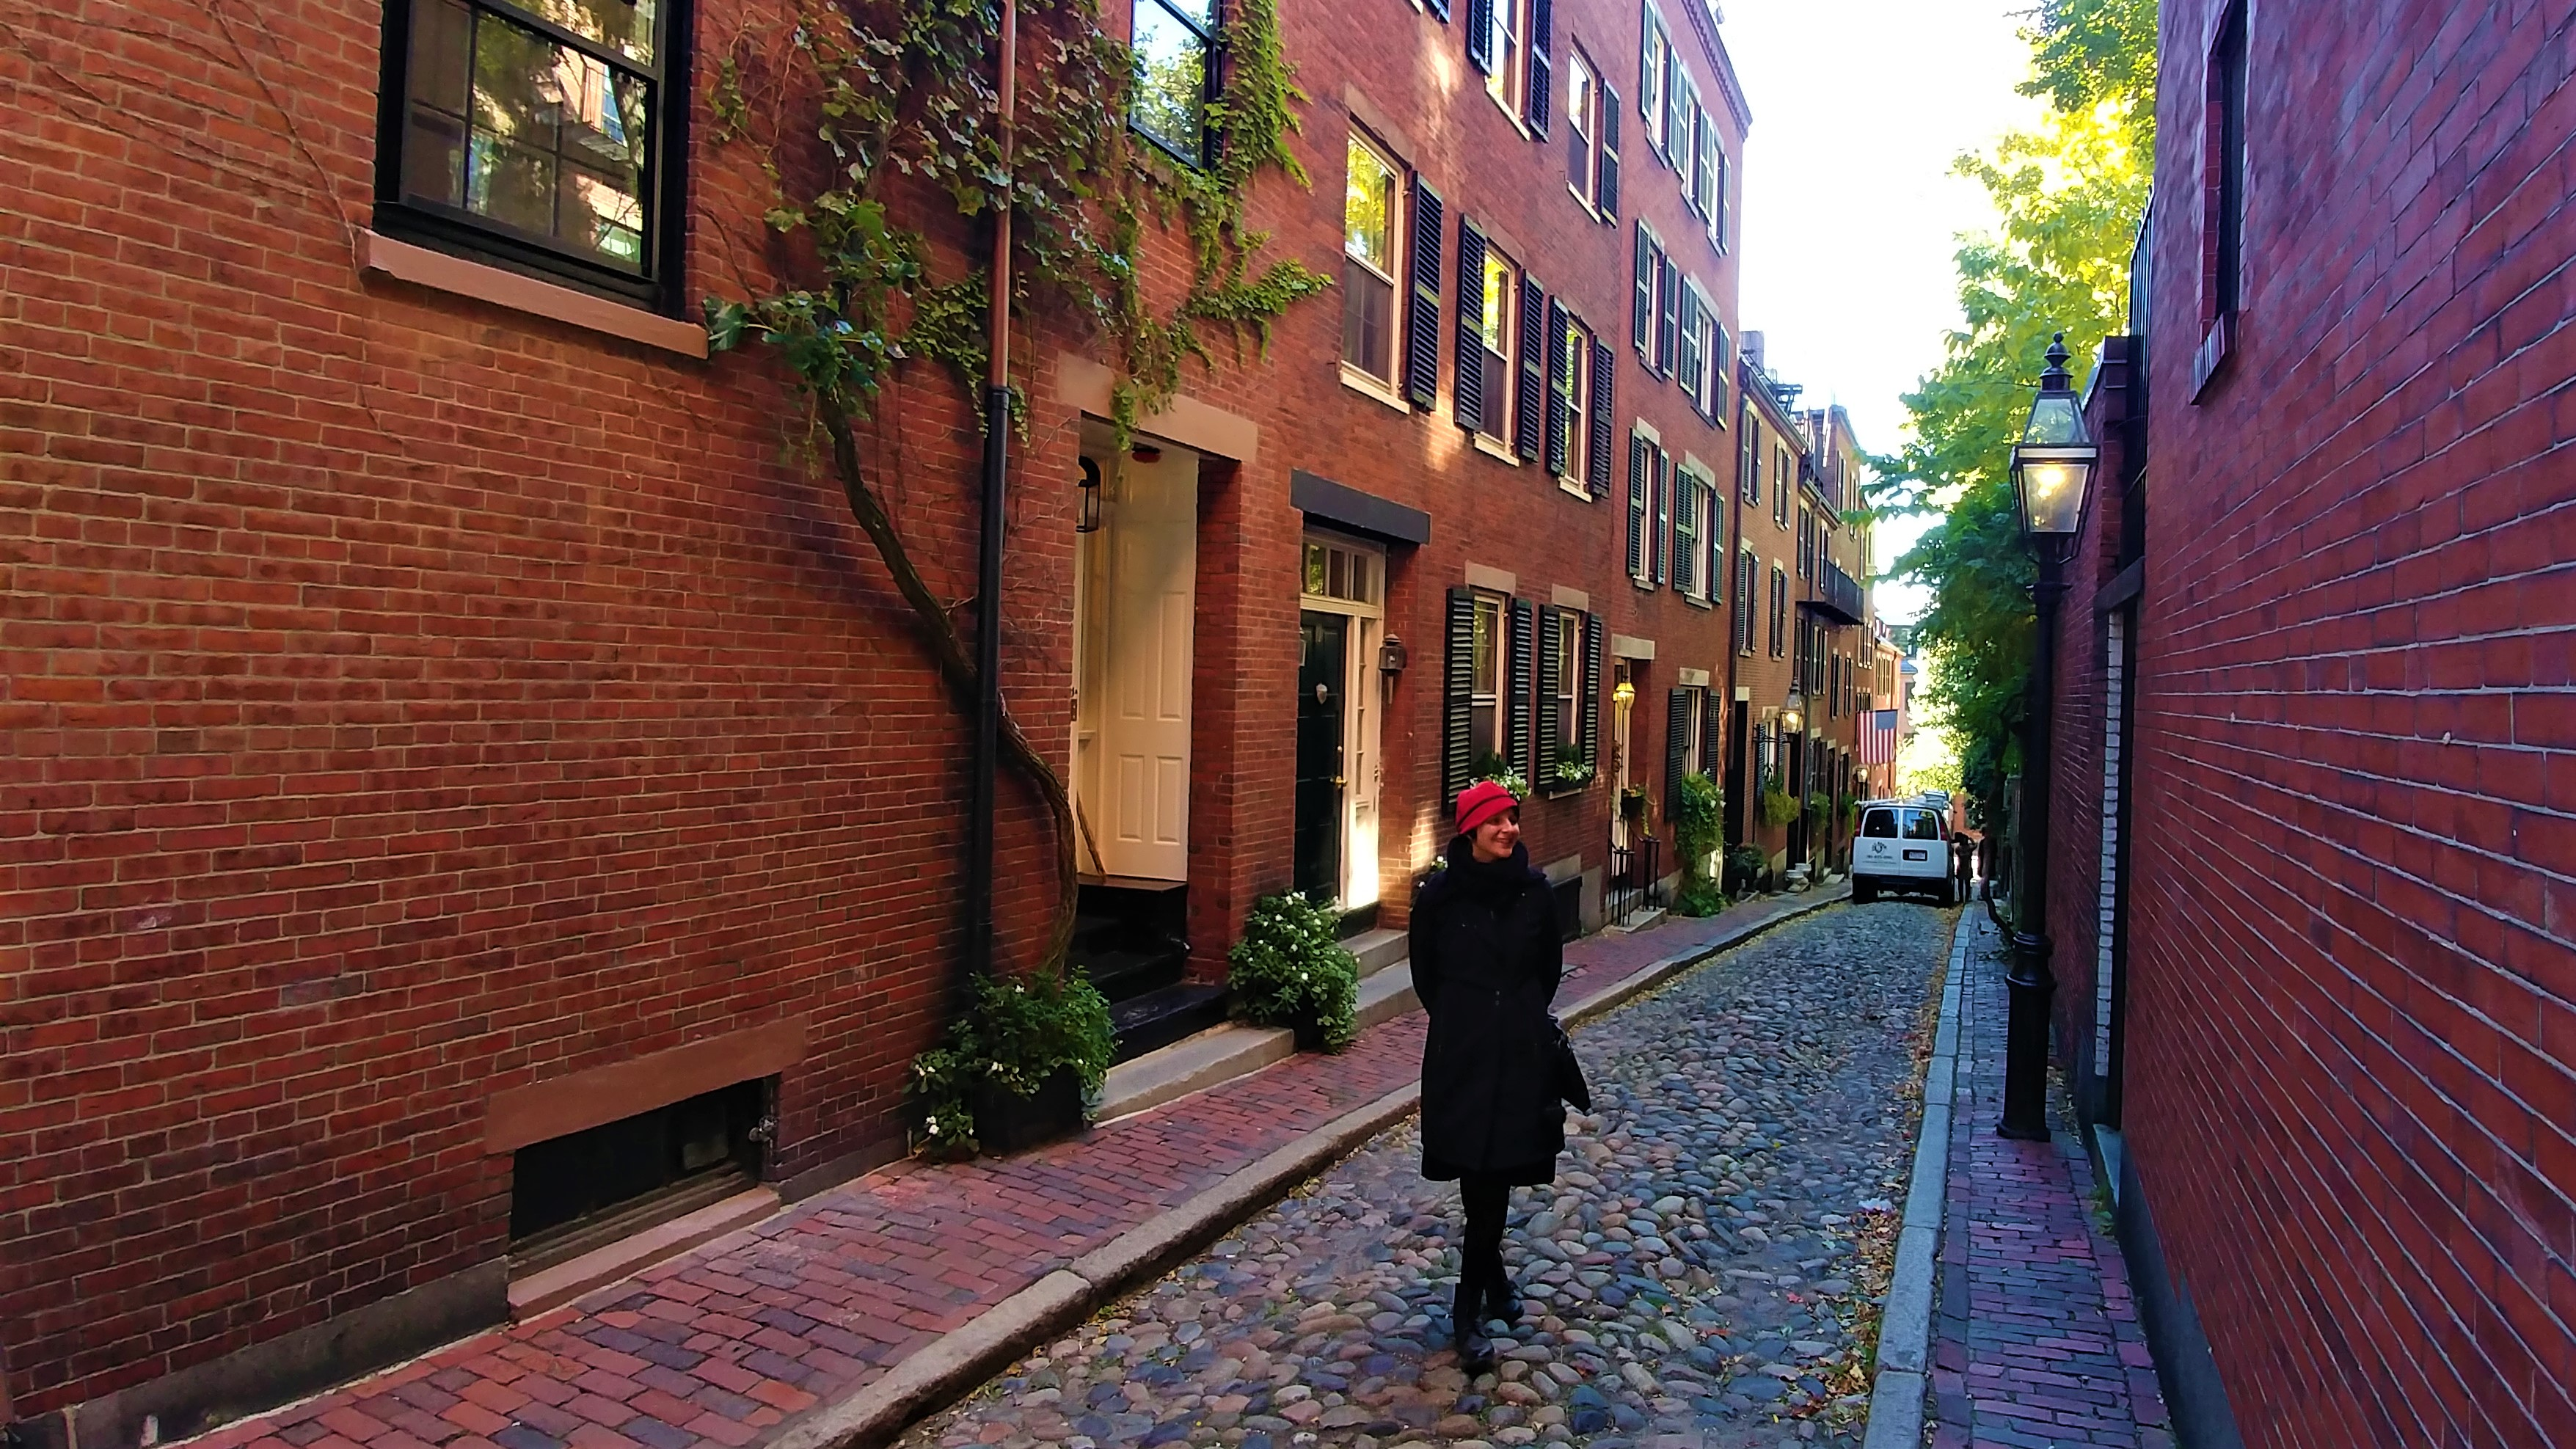 acorn street beacon hill boston usa voyage road-trip blog arpenter le chemin